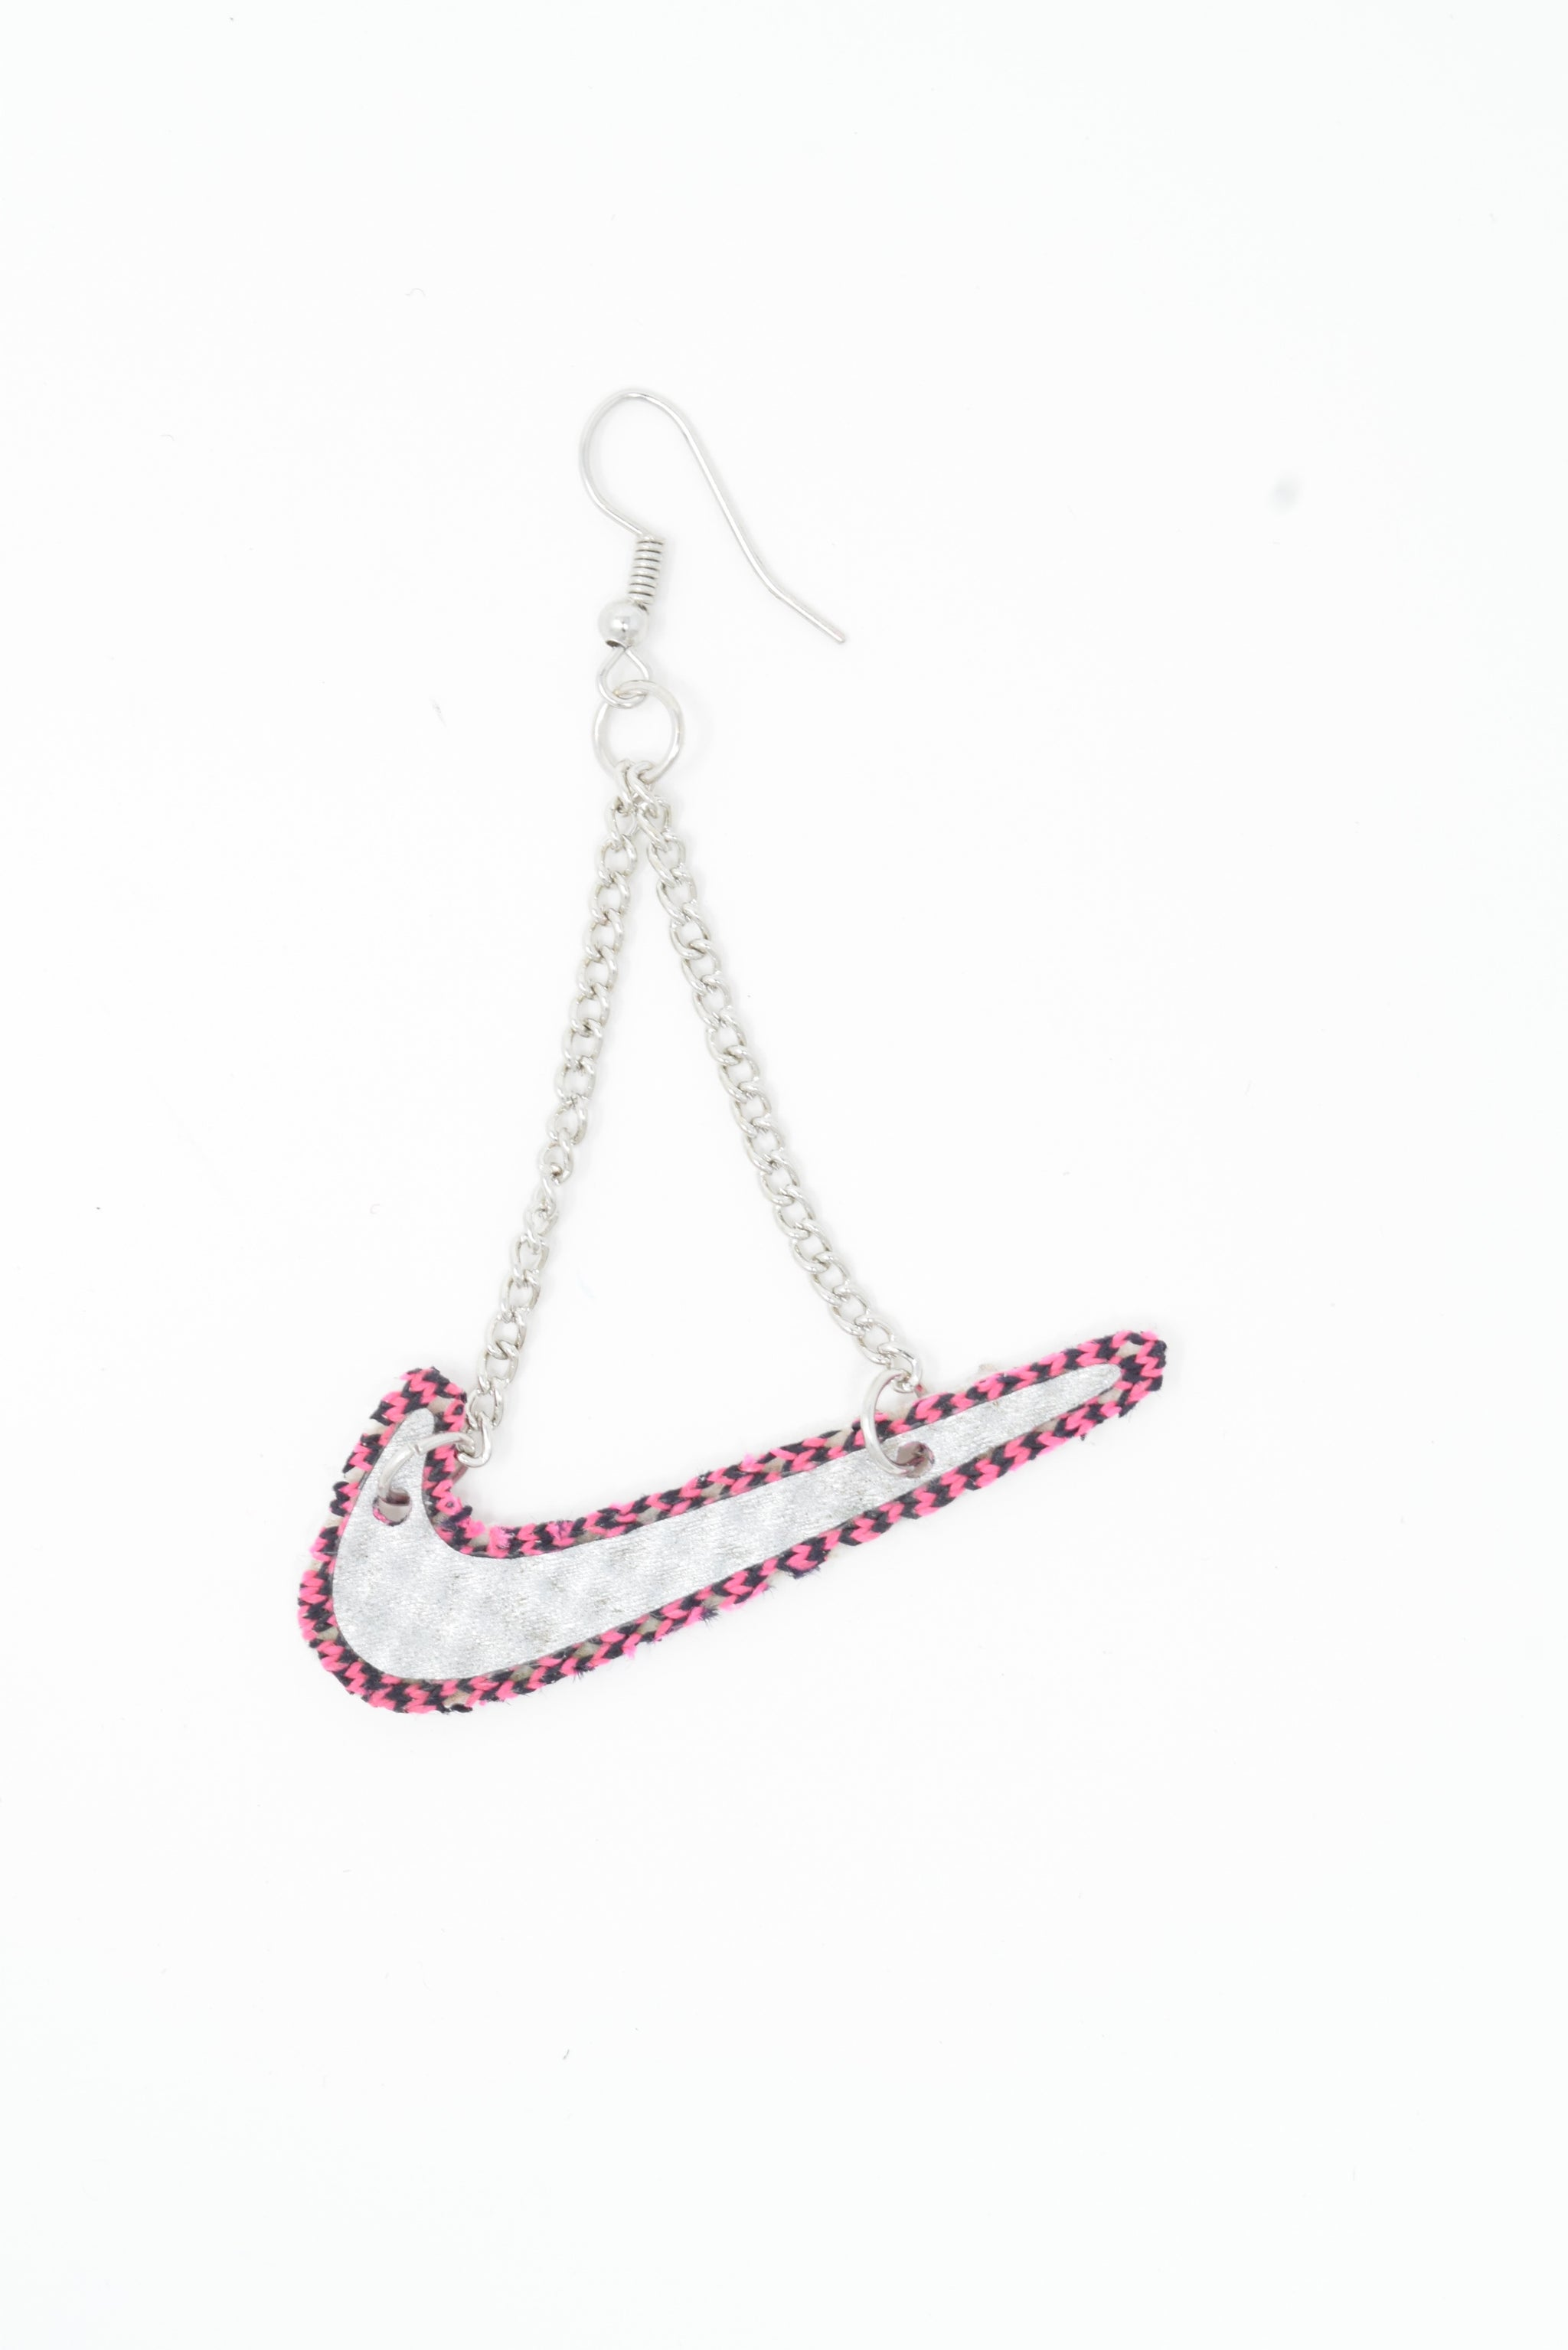 Nike Necklace or Earring - Silver and Pink